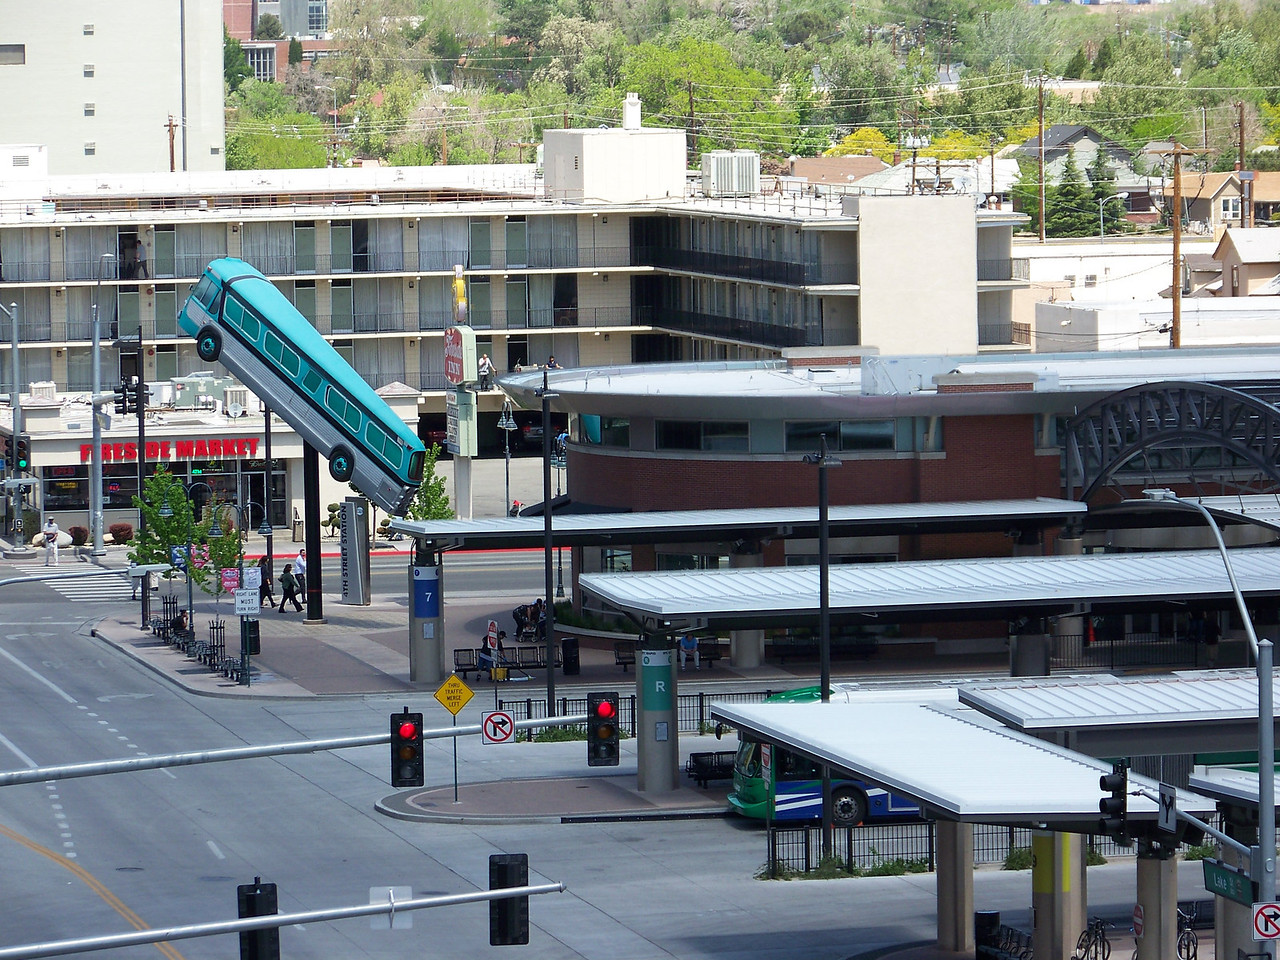 Since our last visit, they relocated the downtown transit center to the northeast of Harrah's.  I like the new sign (or is that art?) featuring an old-fashioned, turquoise-colored bus on a pole.<br /> [Reno - shot from Harrah's parking garage]